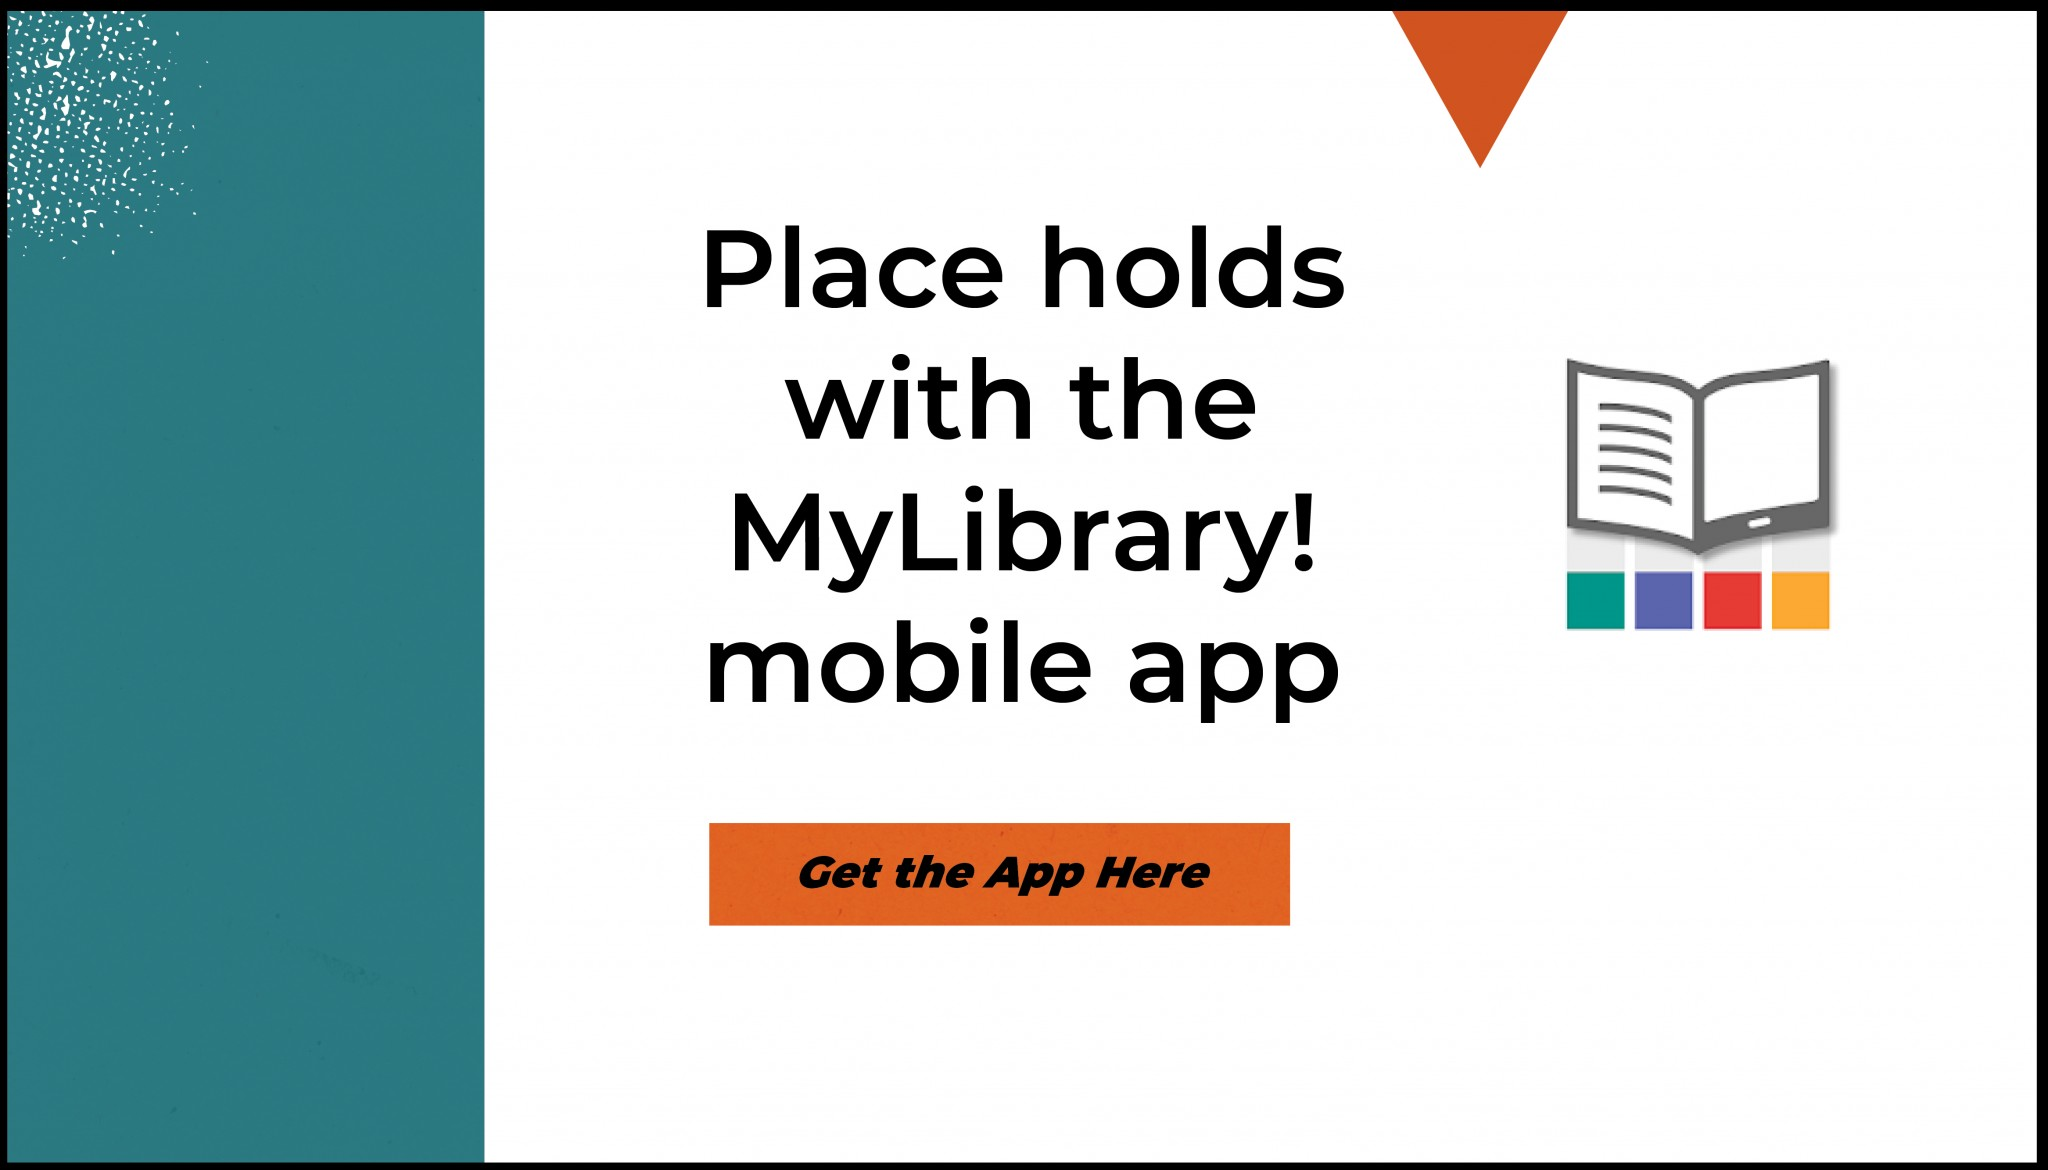 MyLibrary Mobile App